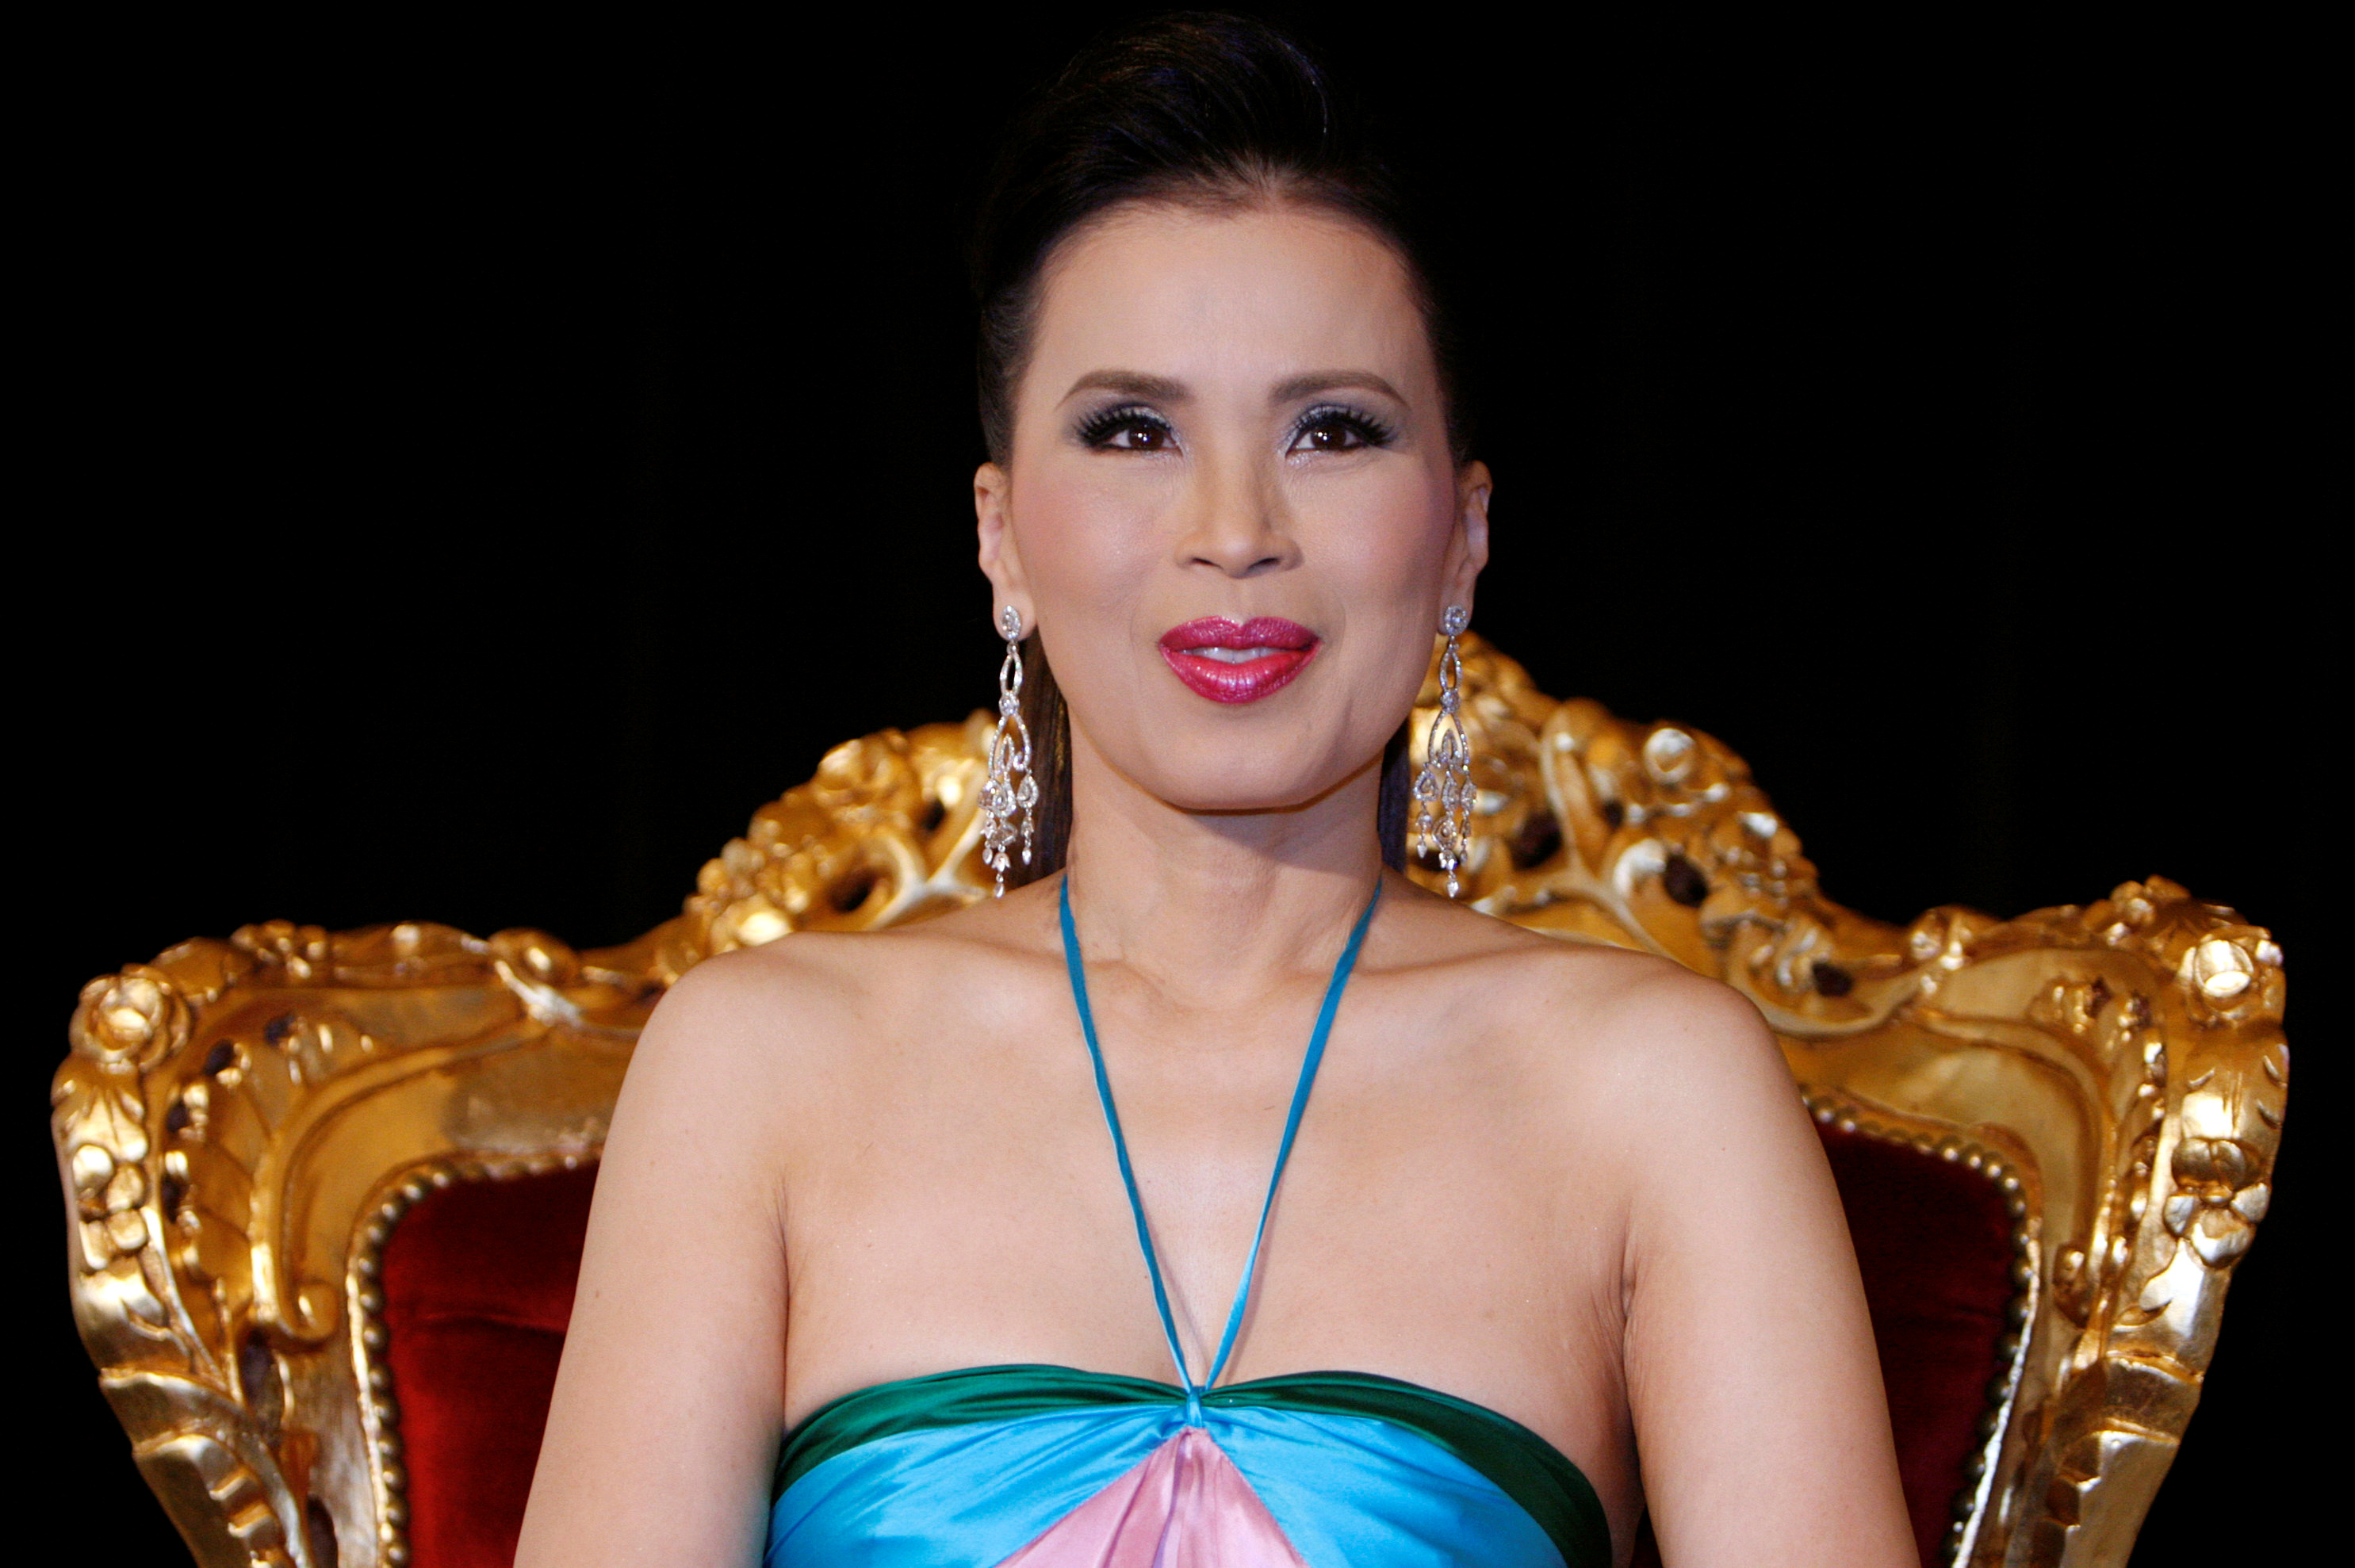 Thai princess says #ILoveYou to fans after king opposes her